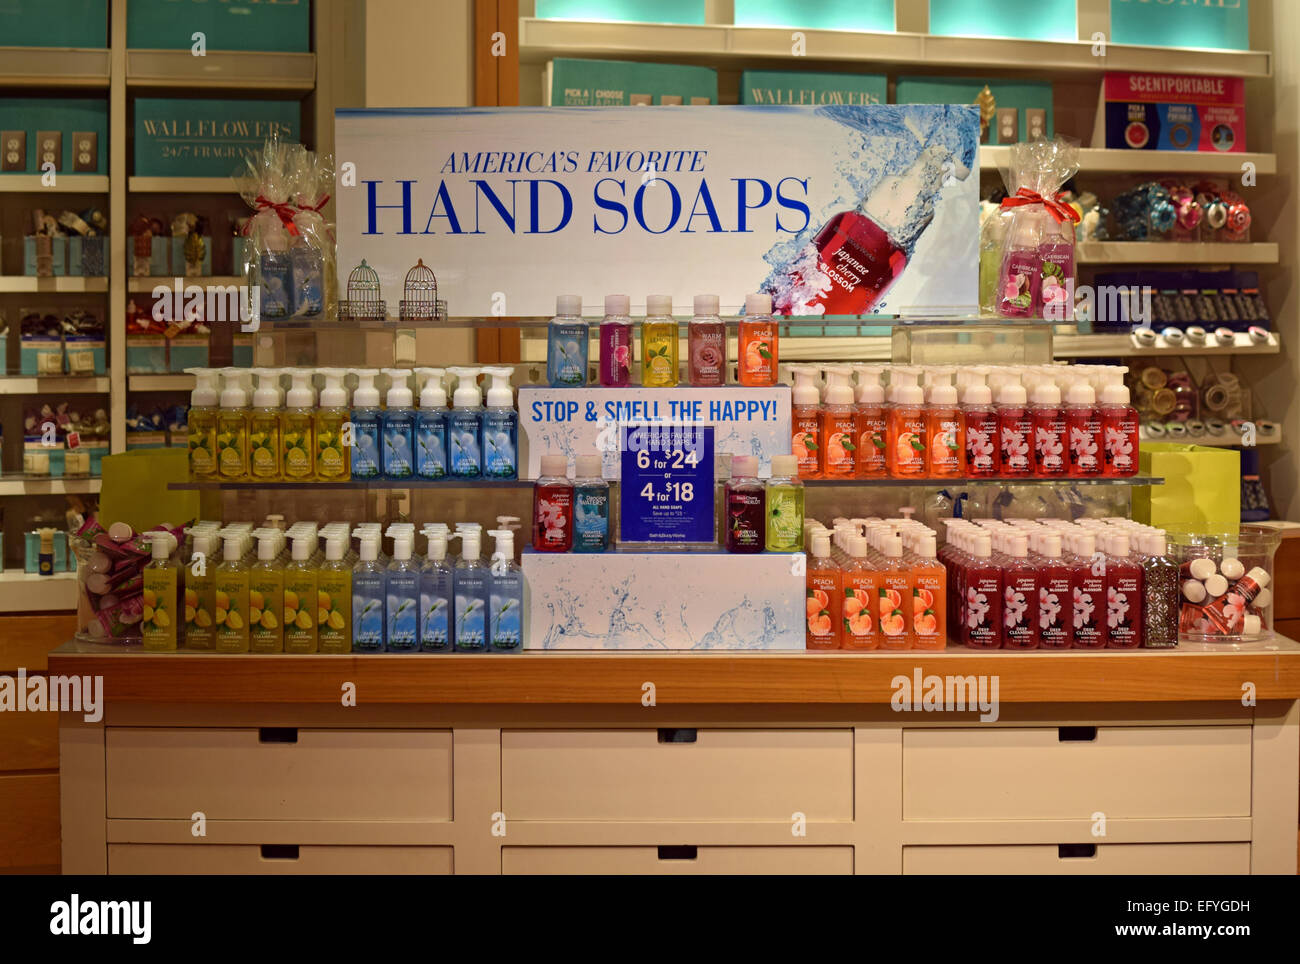 Below is a list of Bath & Body Works mall/outlet store locations in New York, with address, store hours and phone numbers. Bath & Body Works has mall stores across the United States, with 46 locations in New York.